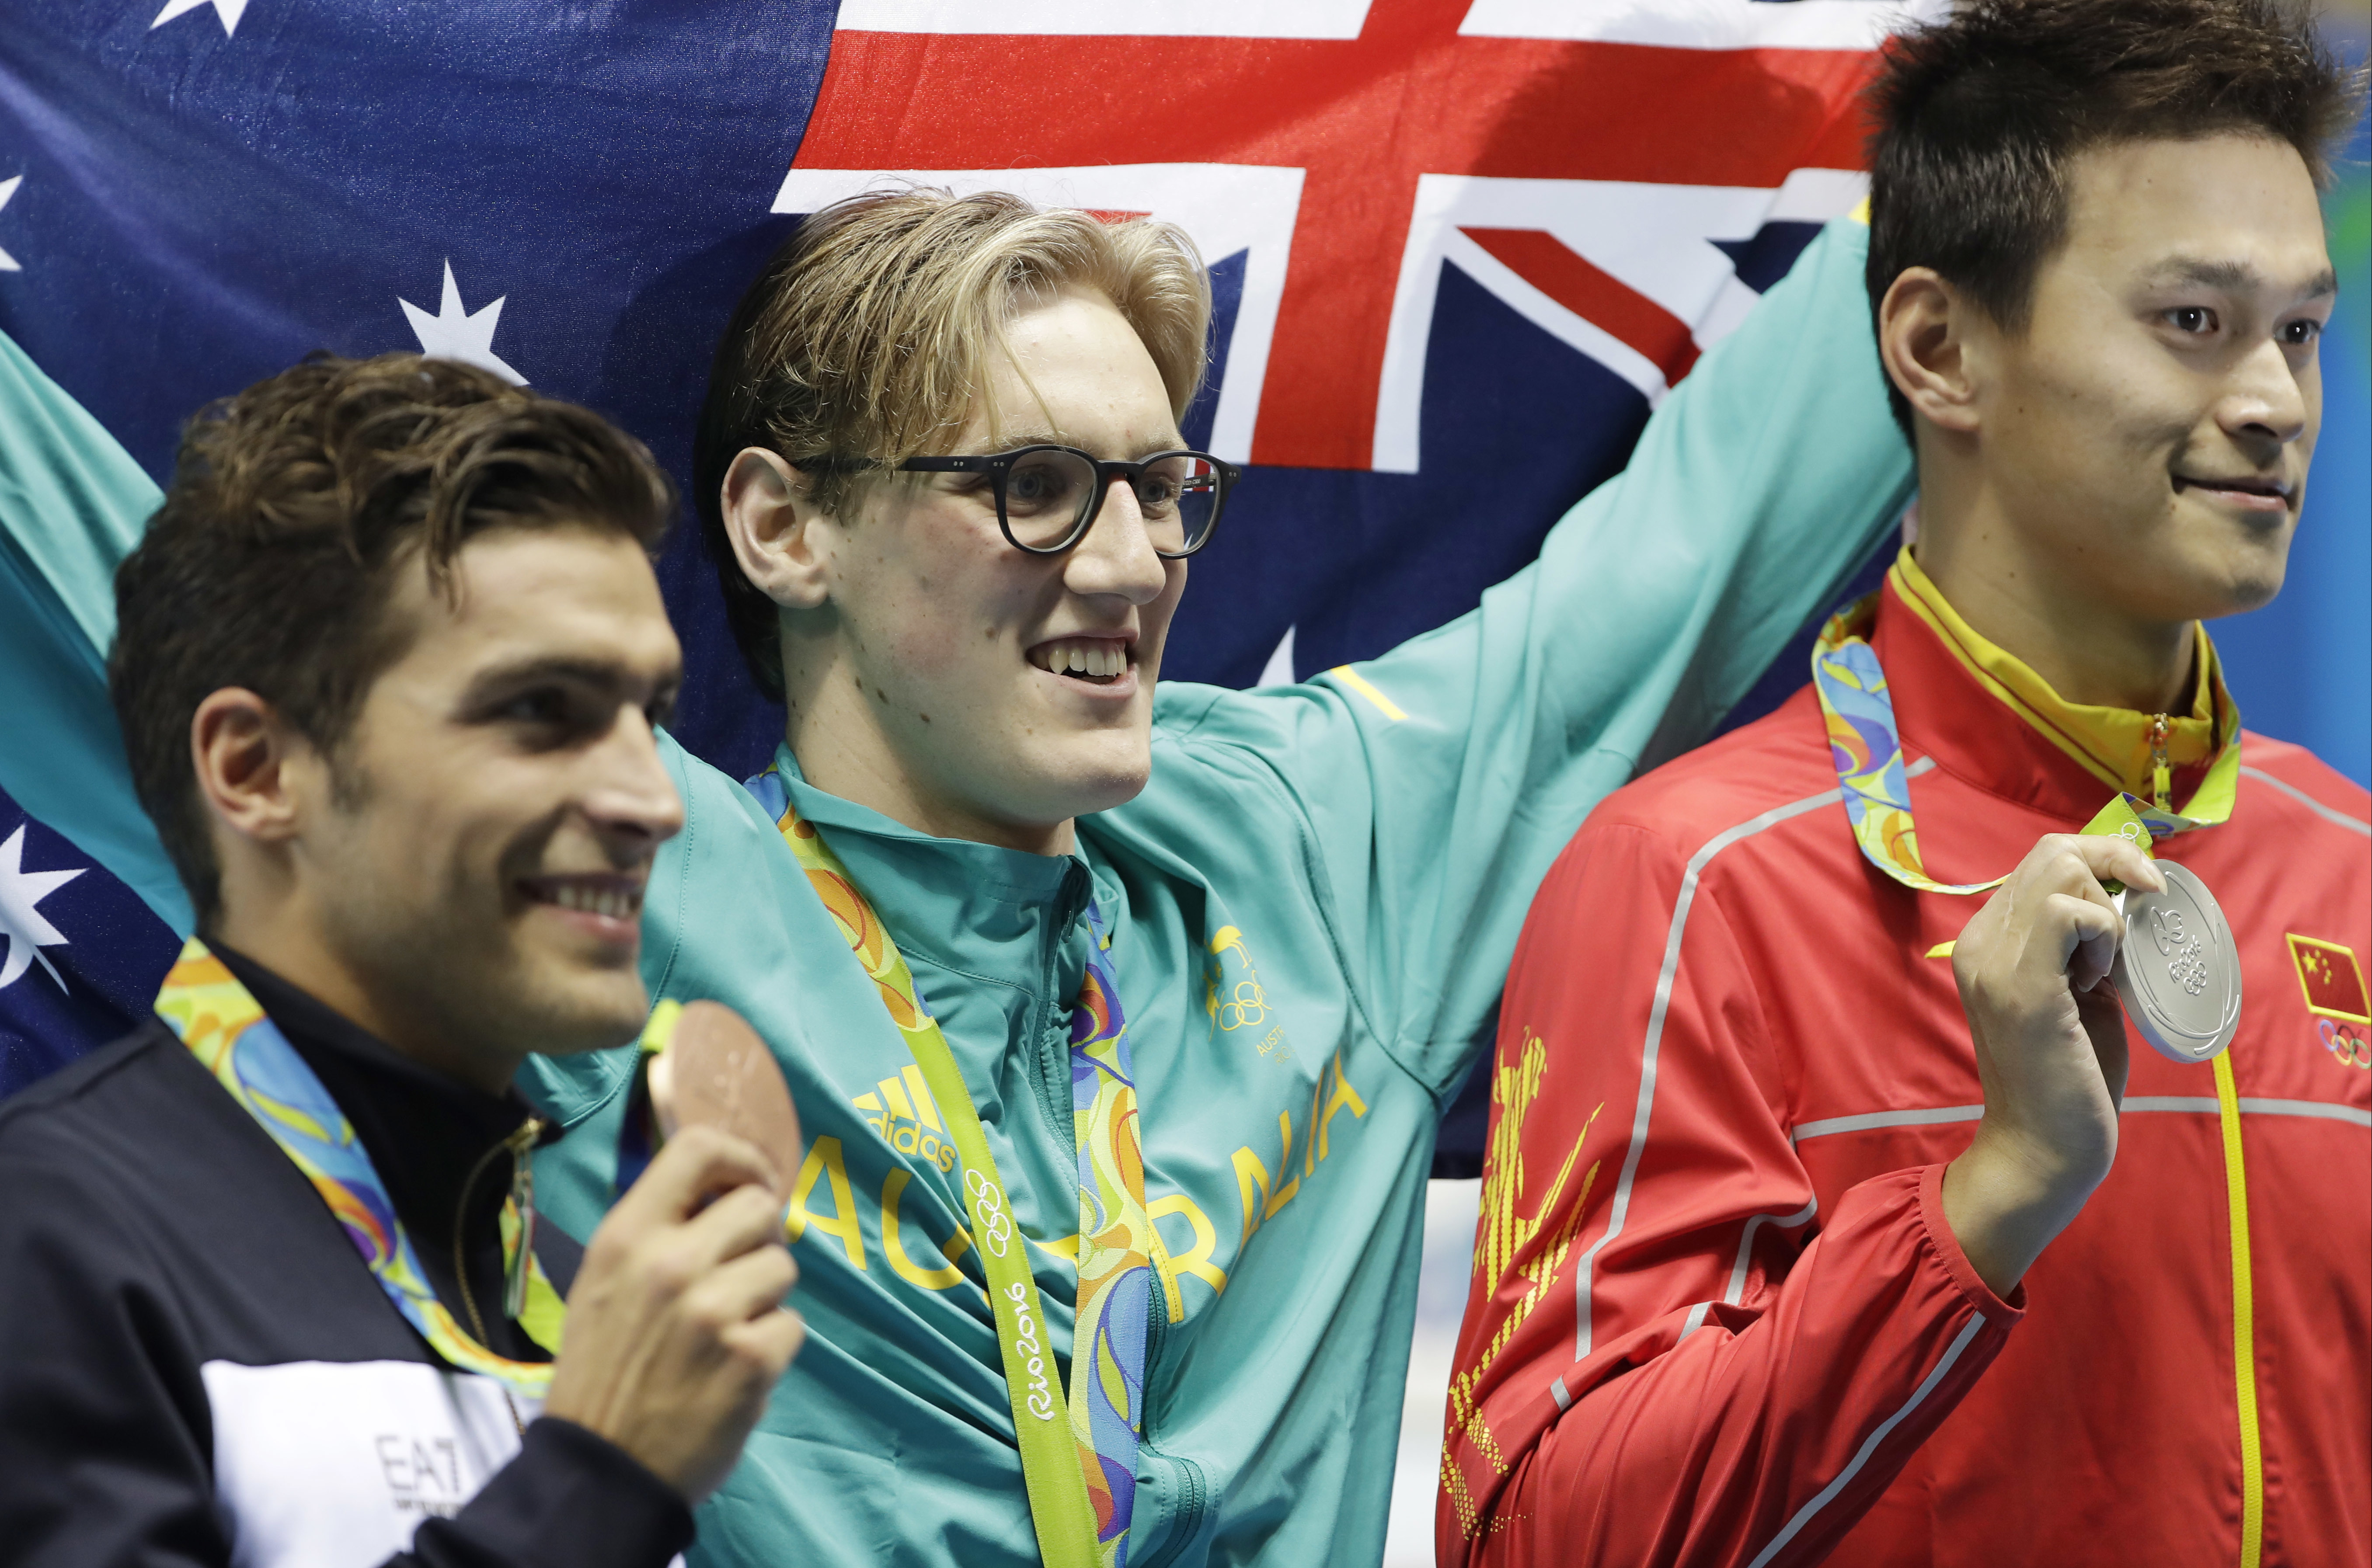 Winner Australia's Mack Horton, center, second placed Italy's Gabriele Detti, left, and third placed China's Sun Yang hold their medals after the men's 400-meter freestyle during the swimming competitions at the 2016 Summer Olympics, Saturday, Aug. 6, 201